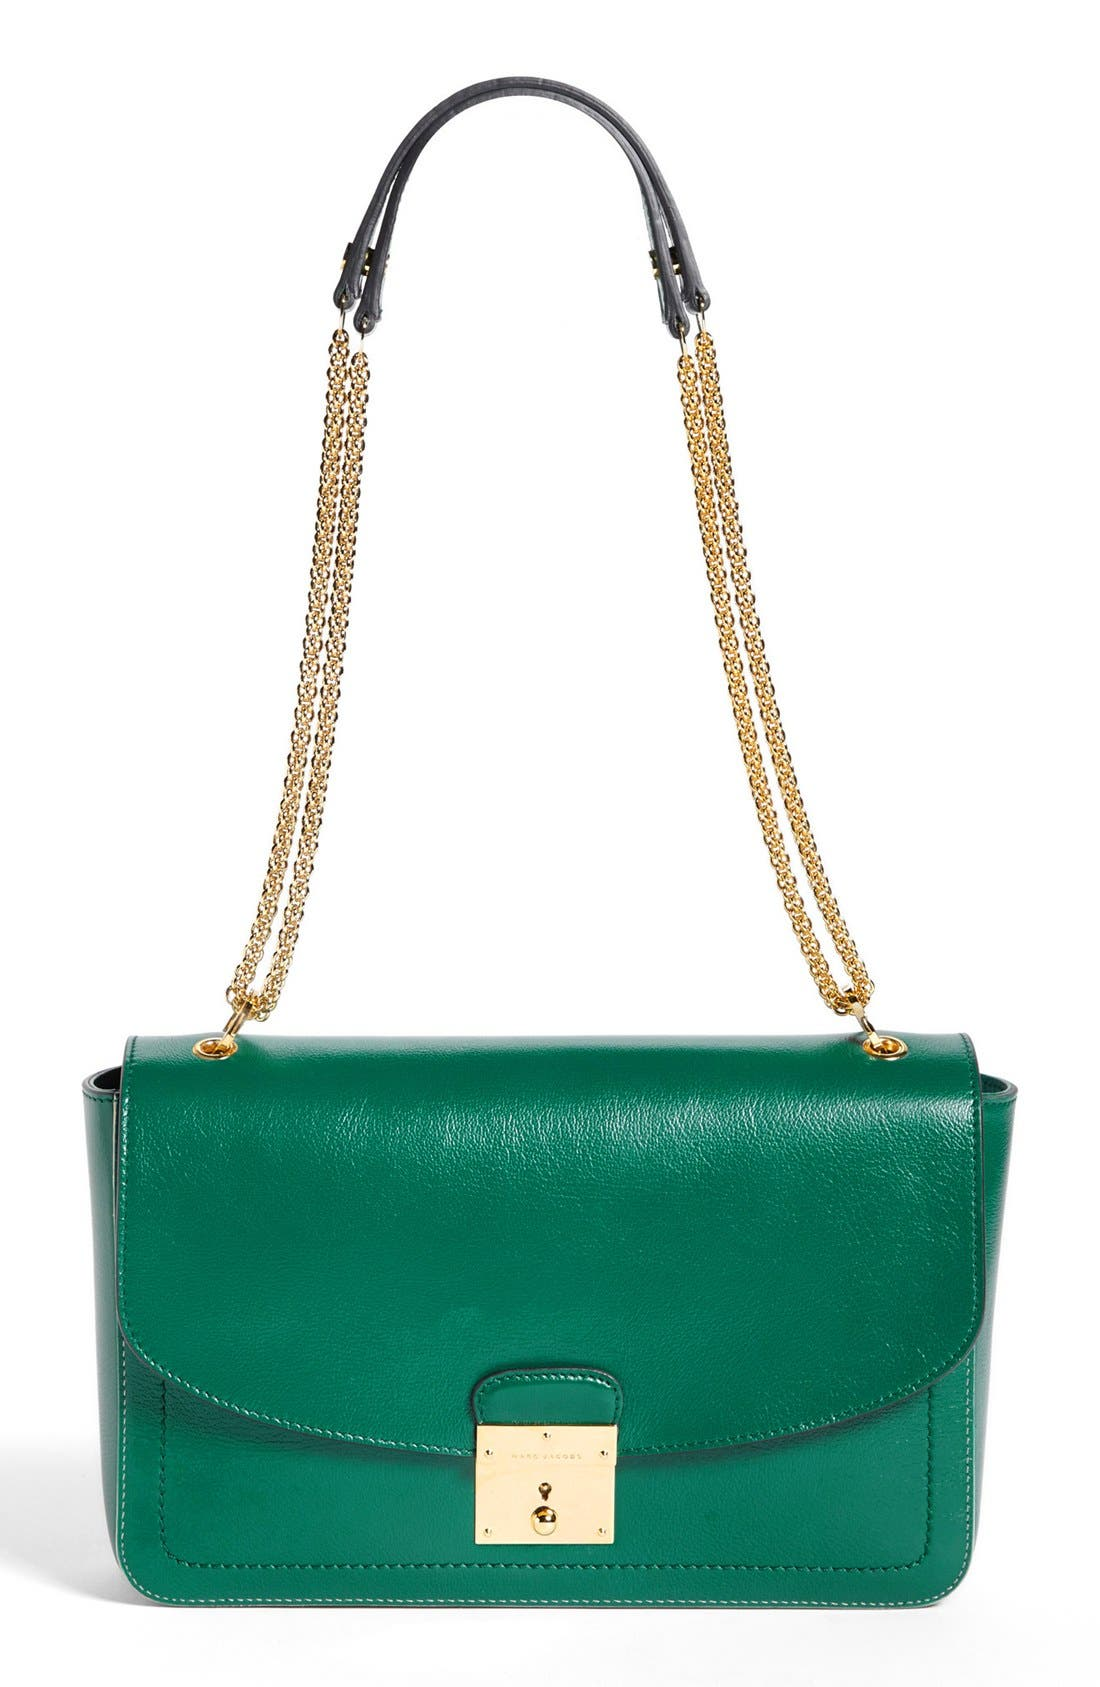 Main Image - MARC JACOBS '1984 - Polly' Leather Shoulder Bag